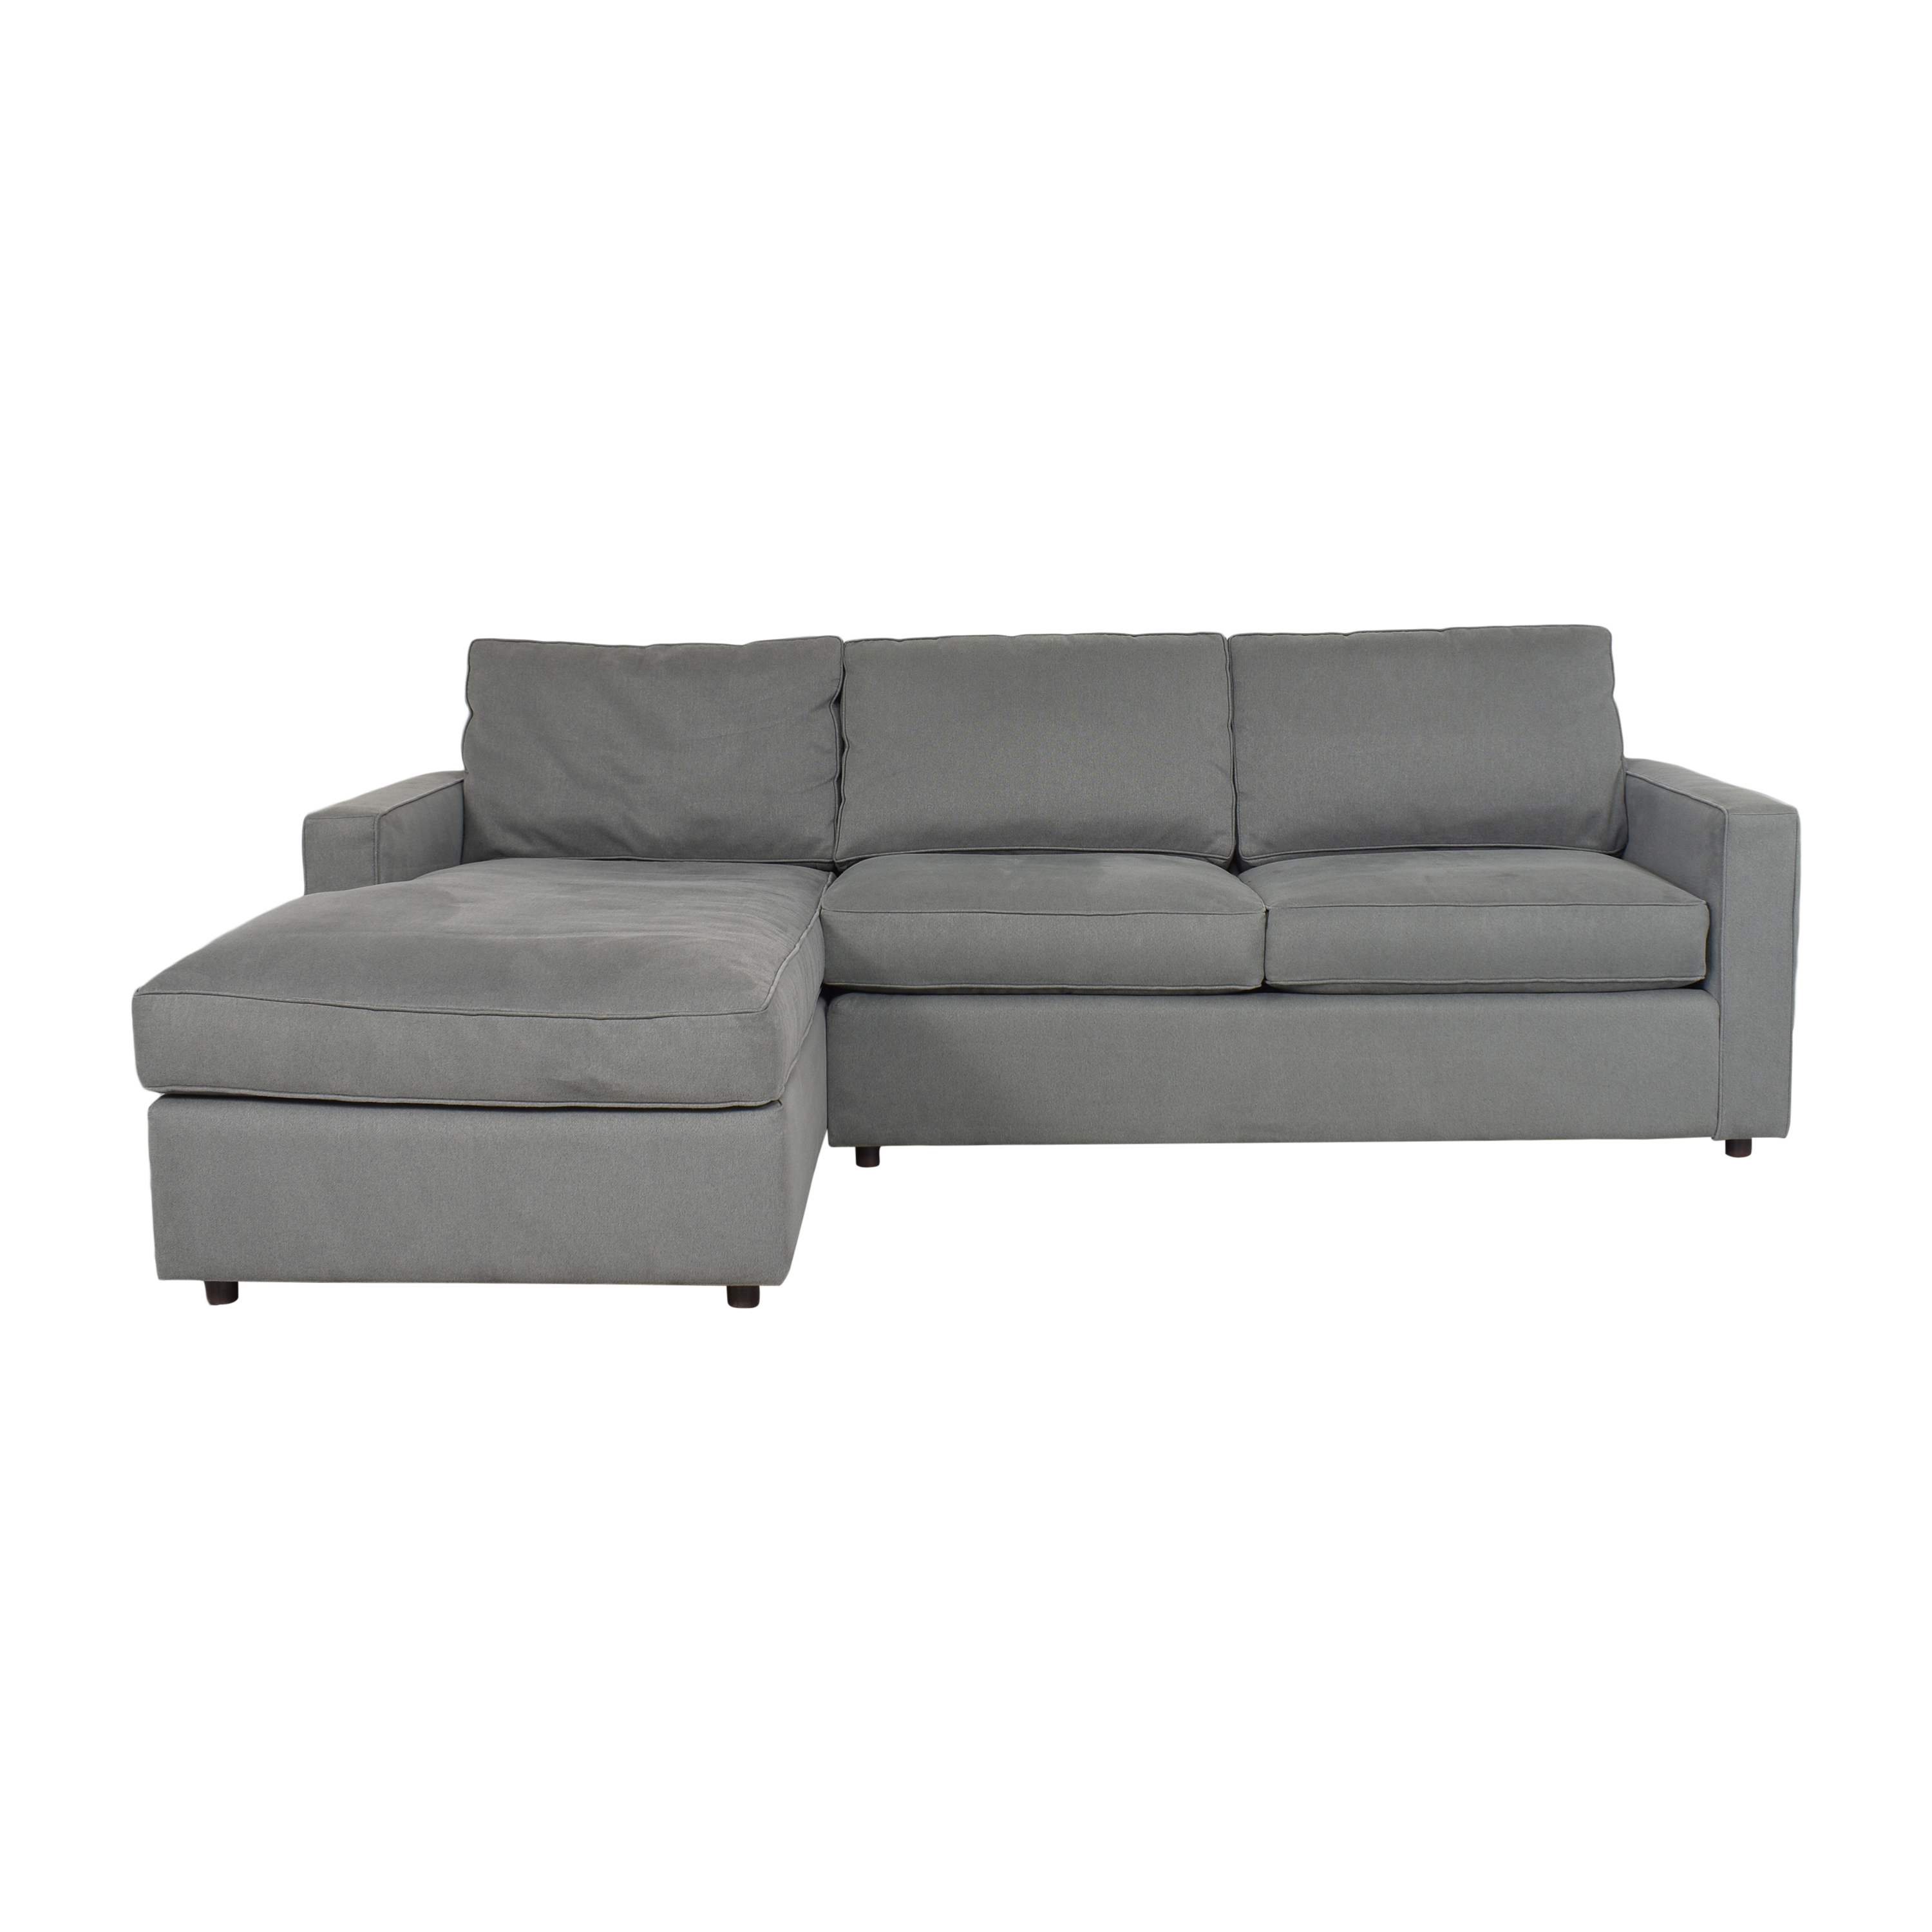 Room & Board York Chaise Sectional Sofa / Sectionals